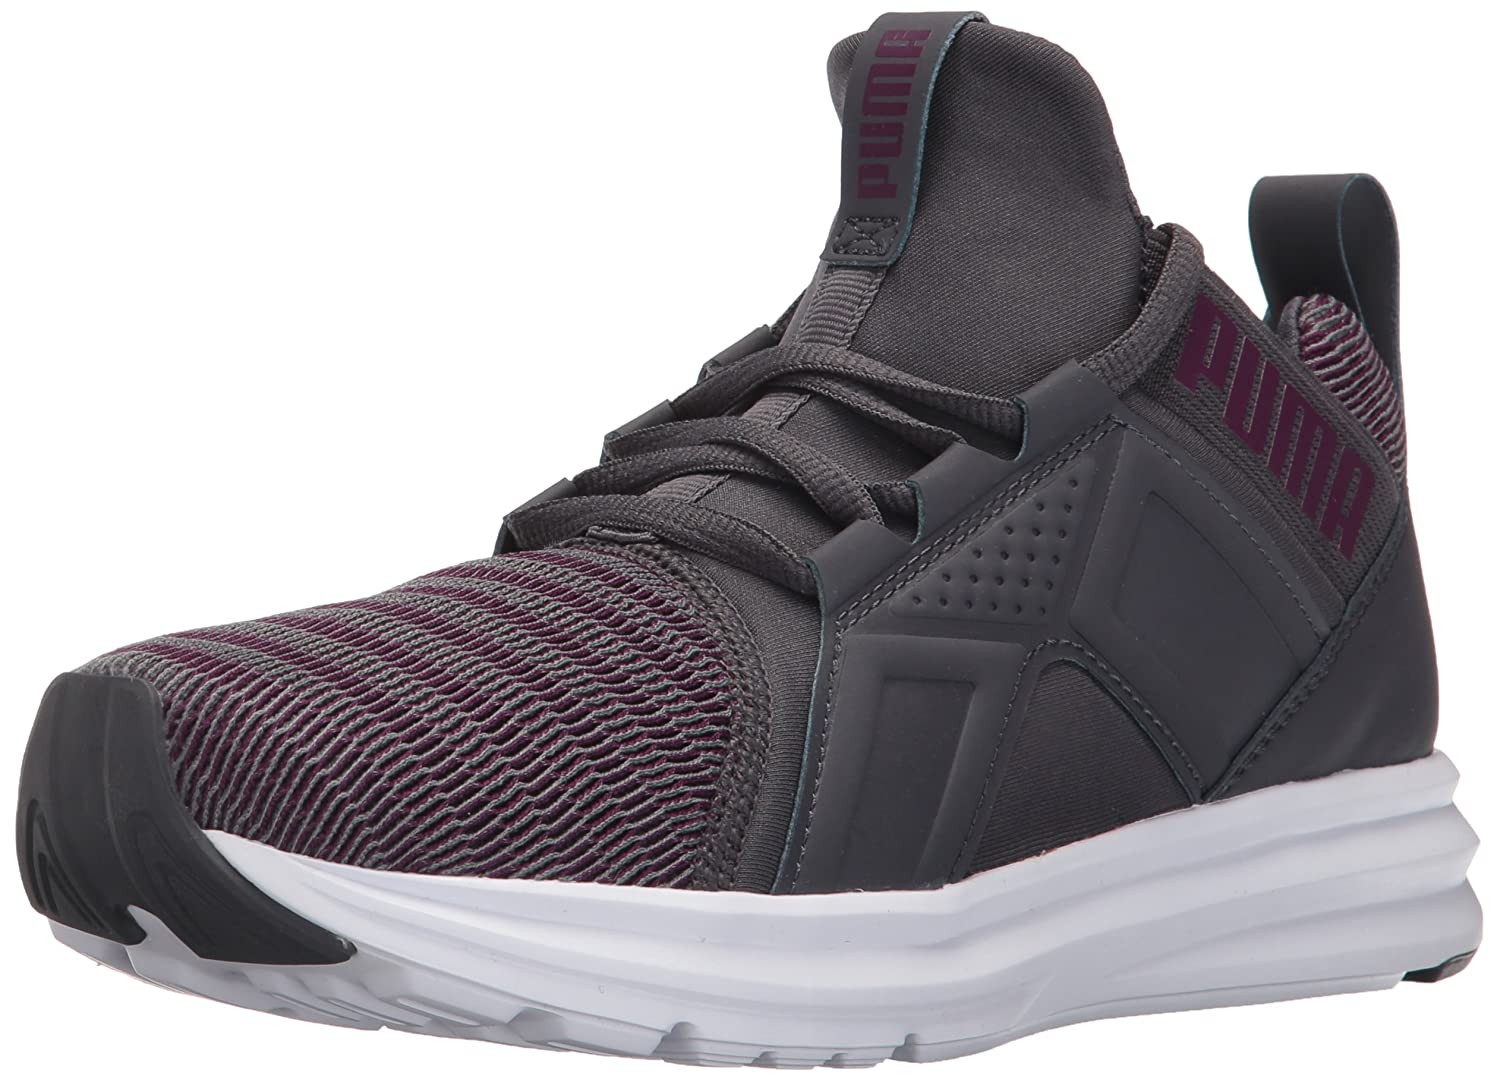 PUMA Women's Enzo Colorshift Wn Sneaker B01N4EW698 7 M US|Periscope-dark Purple